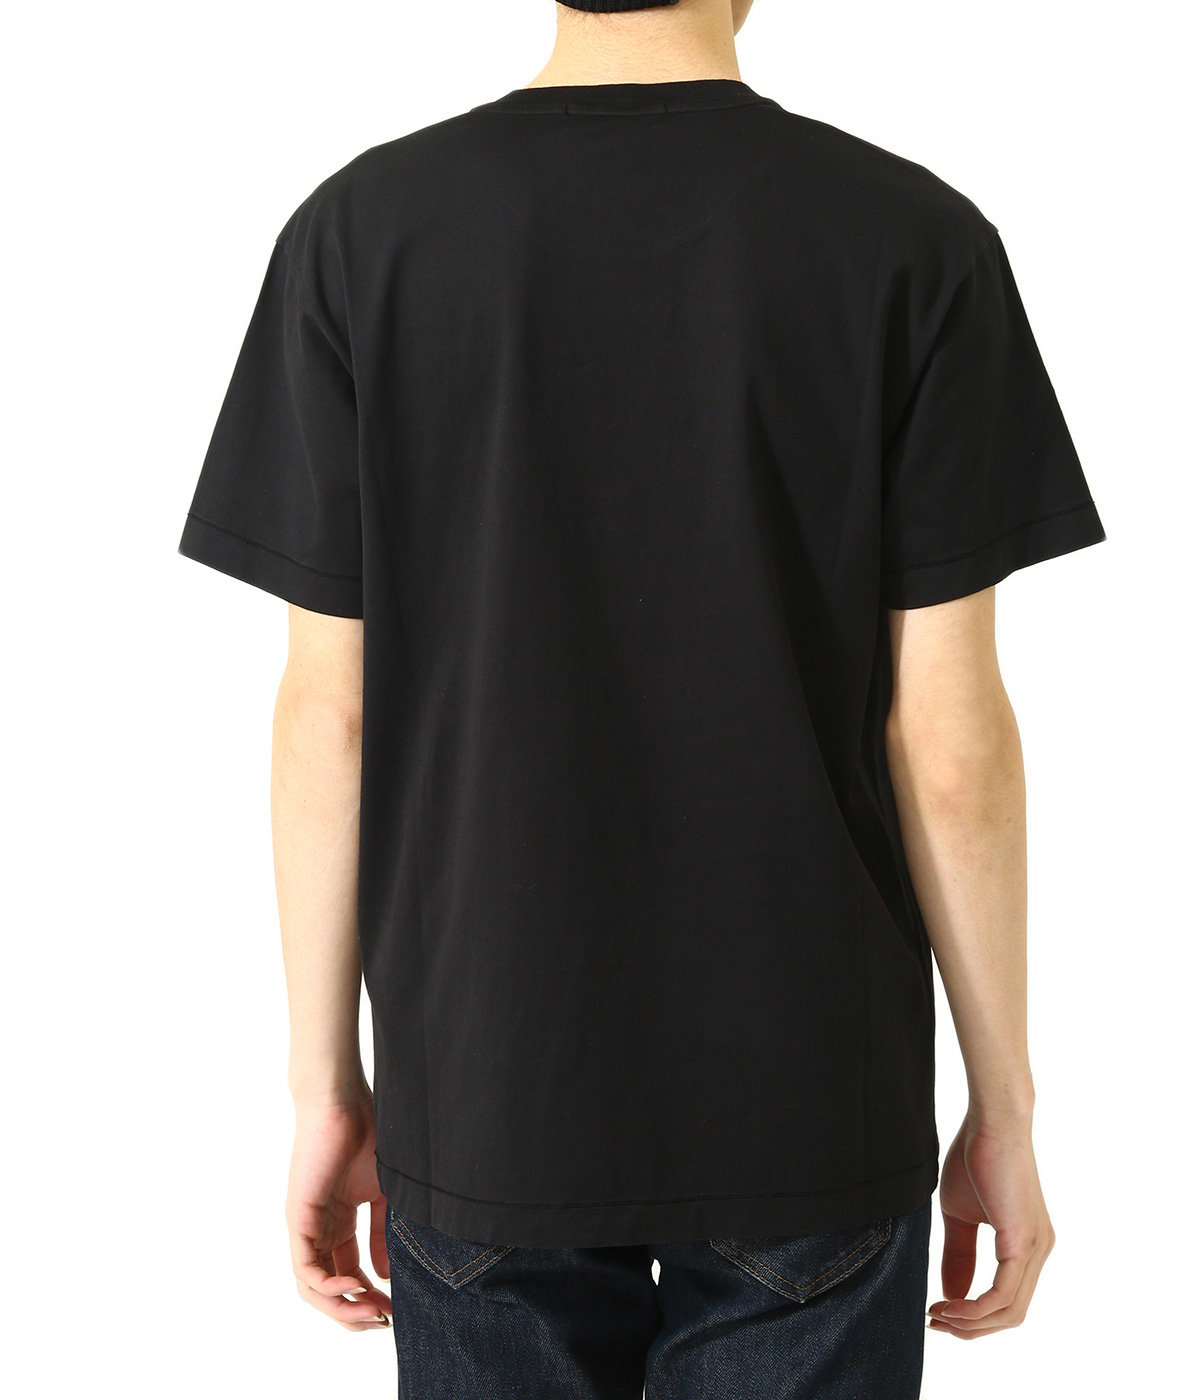 60/2 COTTON JERSEY T-SHIRTS